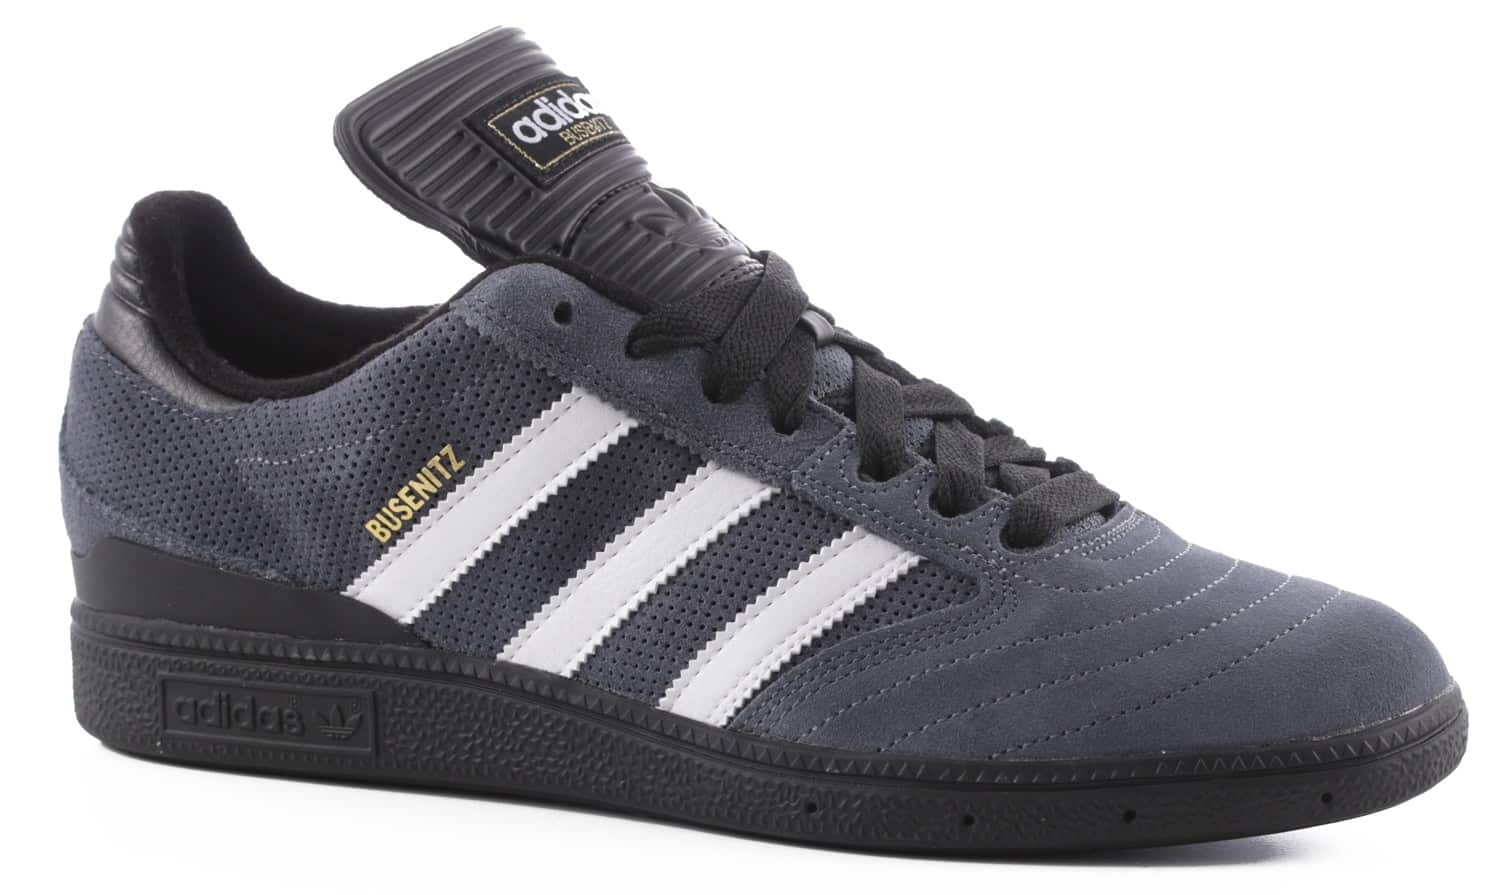 Adidas Surf Shoes